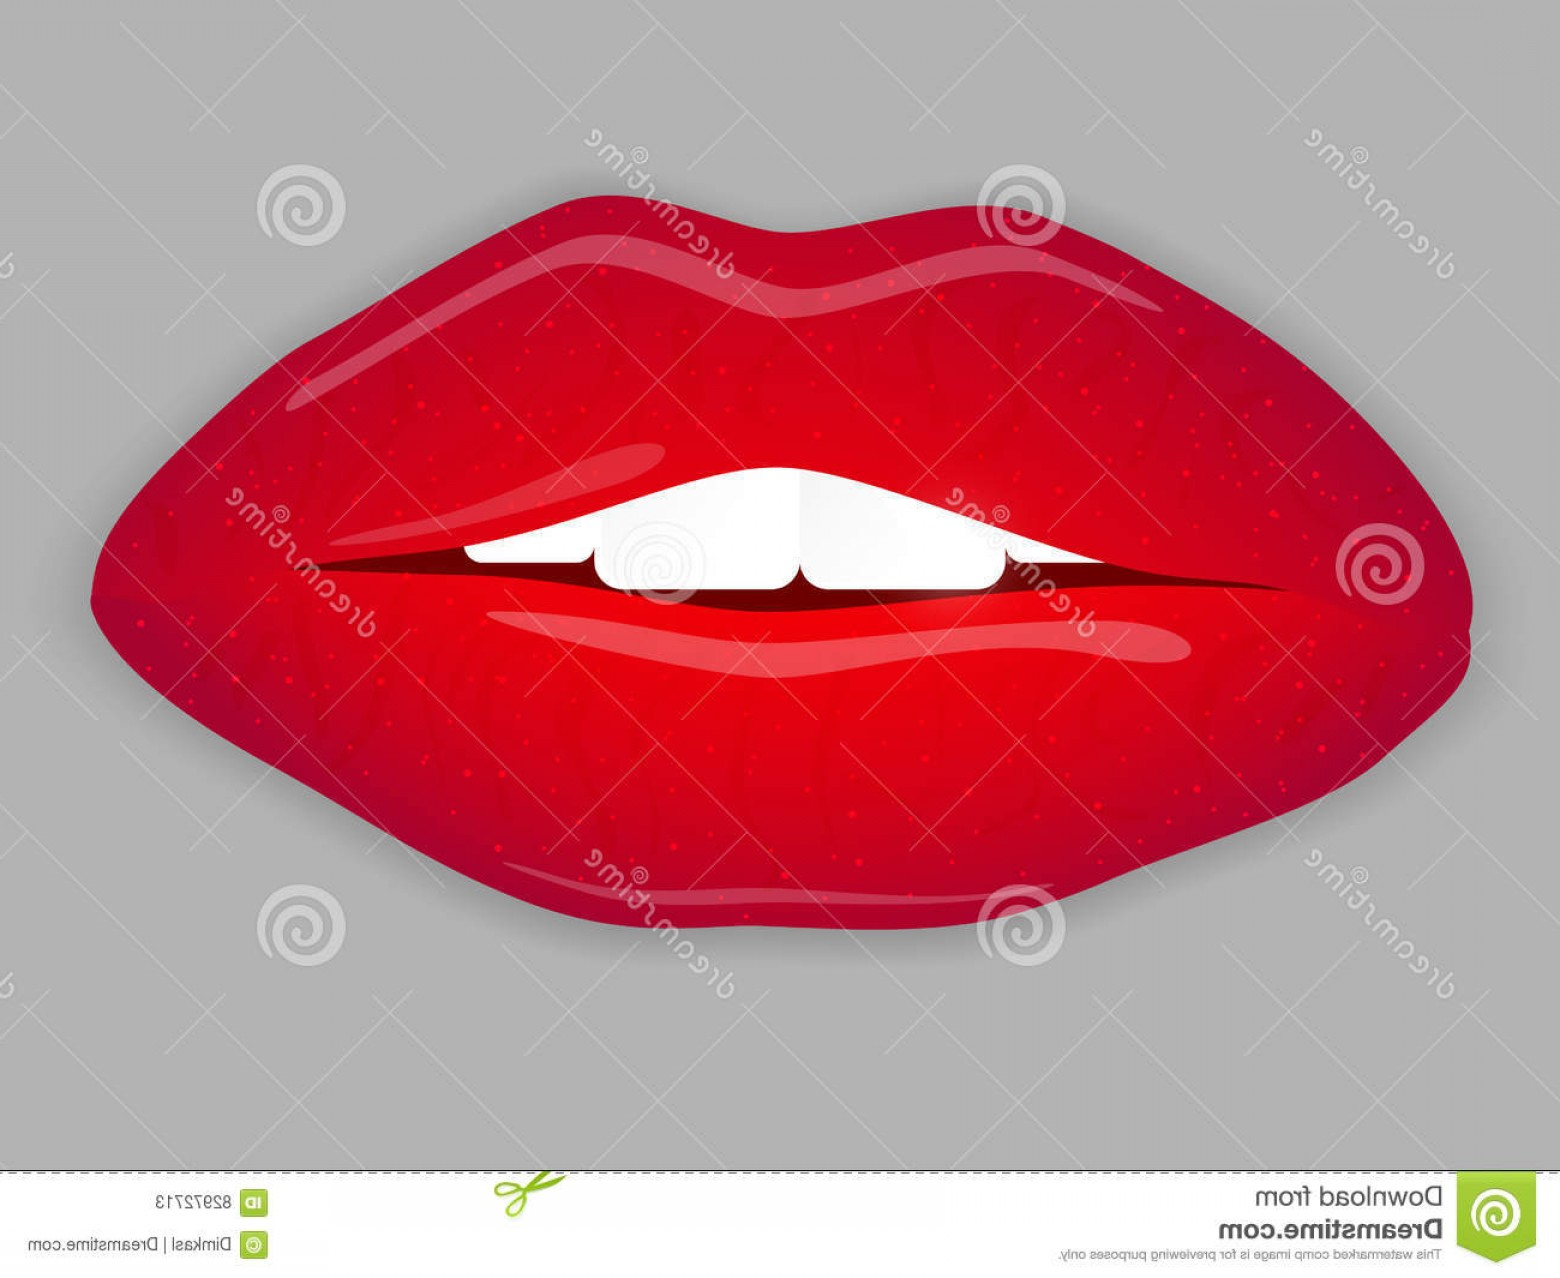 Doll Lips Vector: Stock Illustration Open Mouth Red Lips Vector Illustration Eps Image